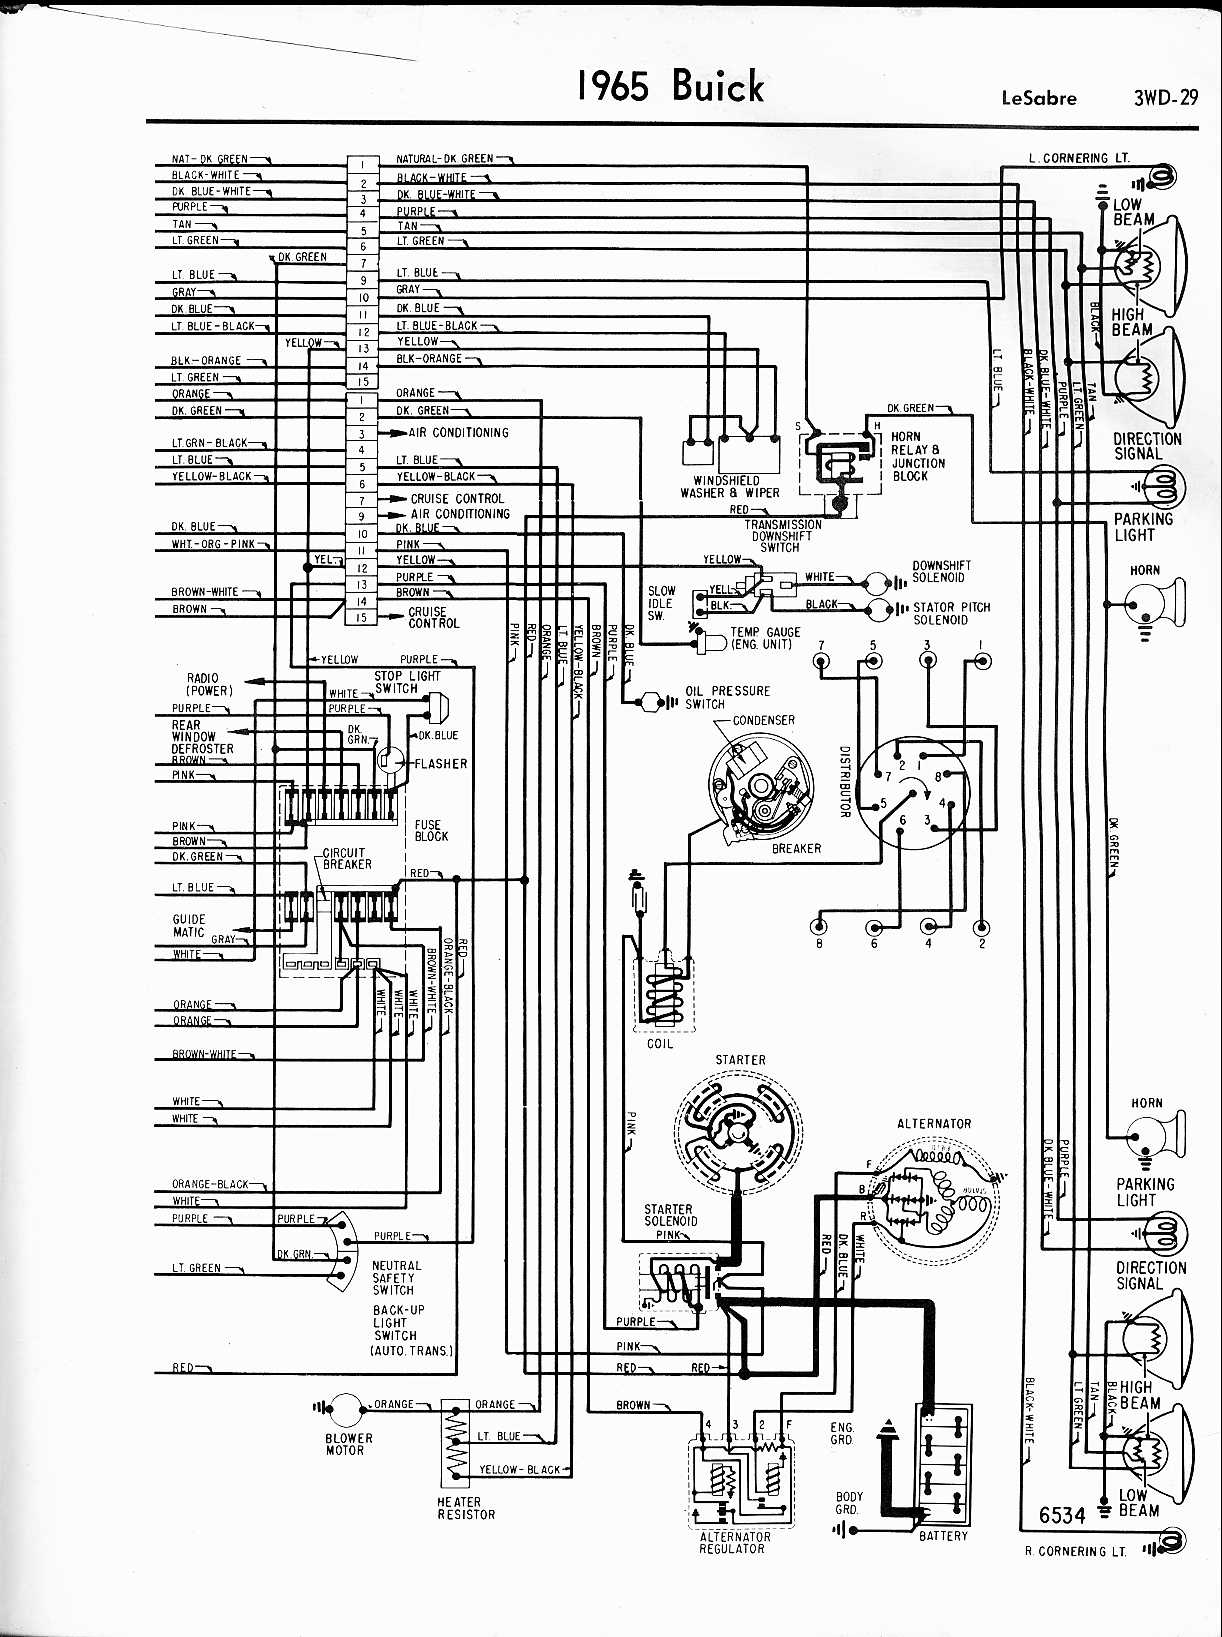 MWireBuic65_3WD 029 buick wiring diagrams 1957 1965 1991 buick lesabre wiring diagram at bayanpartner.co